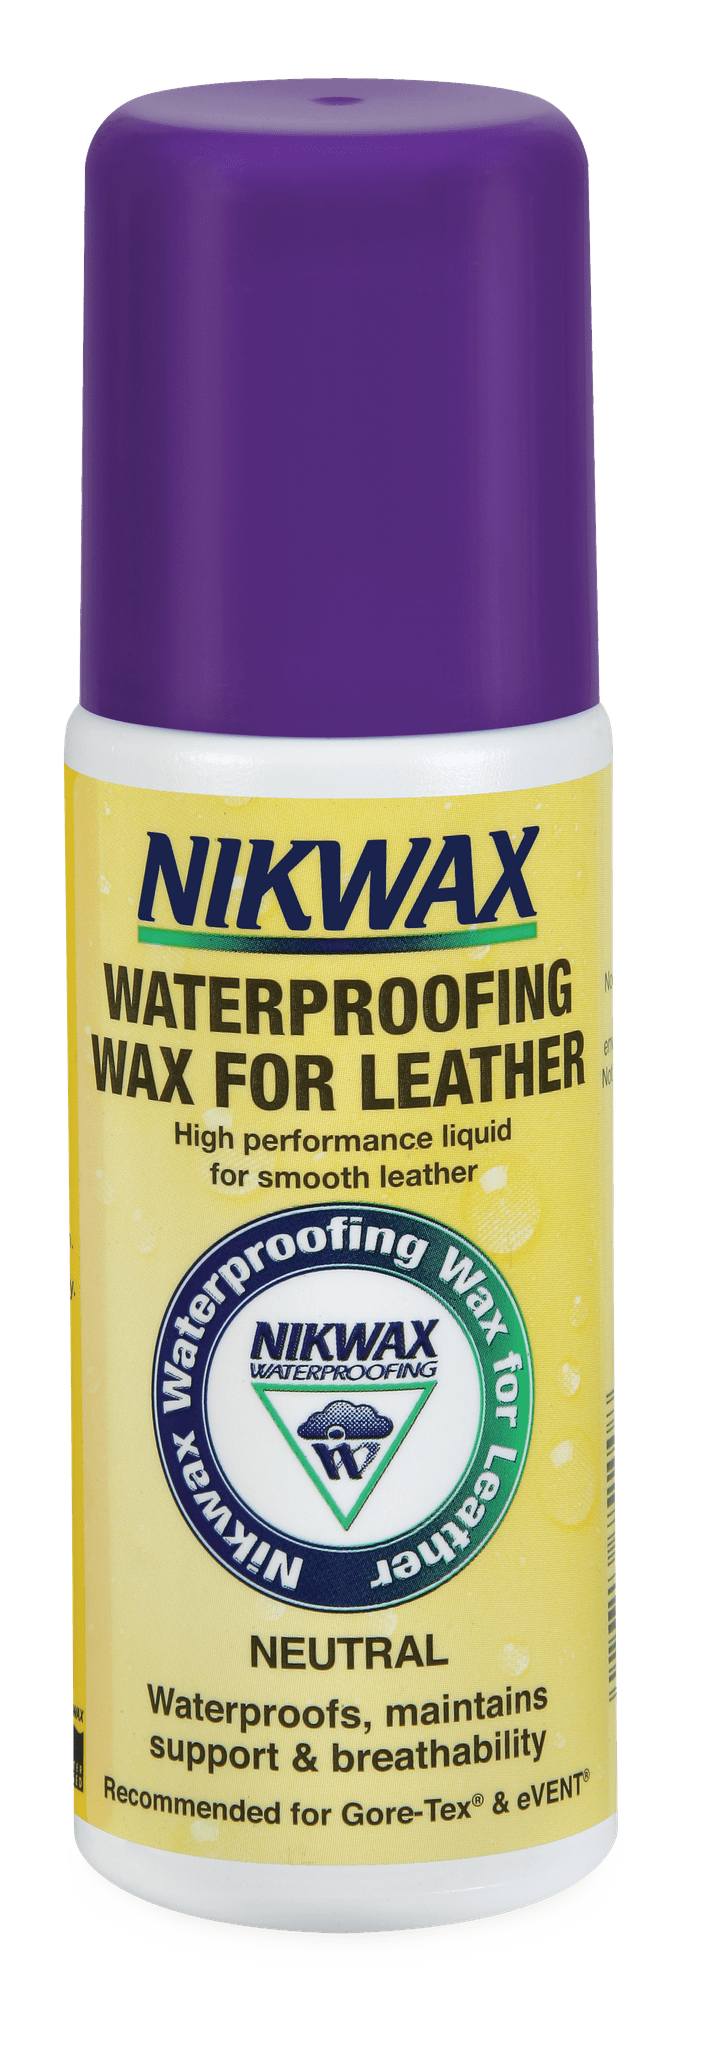 Nikwax Waterproofing Wax for Leather Liquid | NIKWAX | Portwest